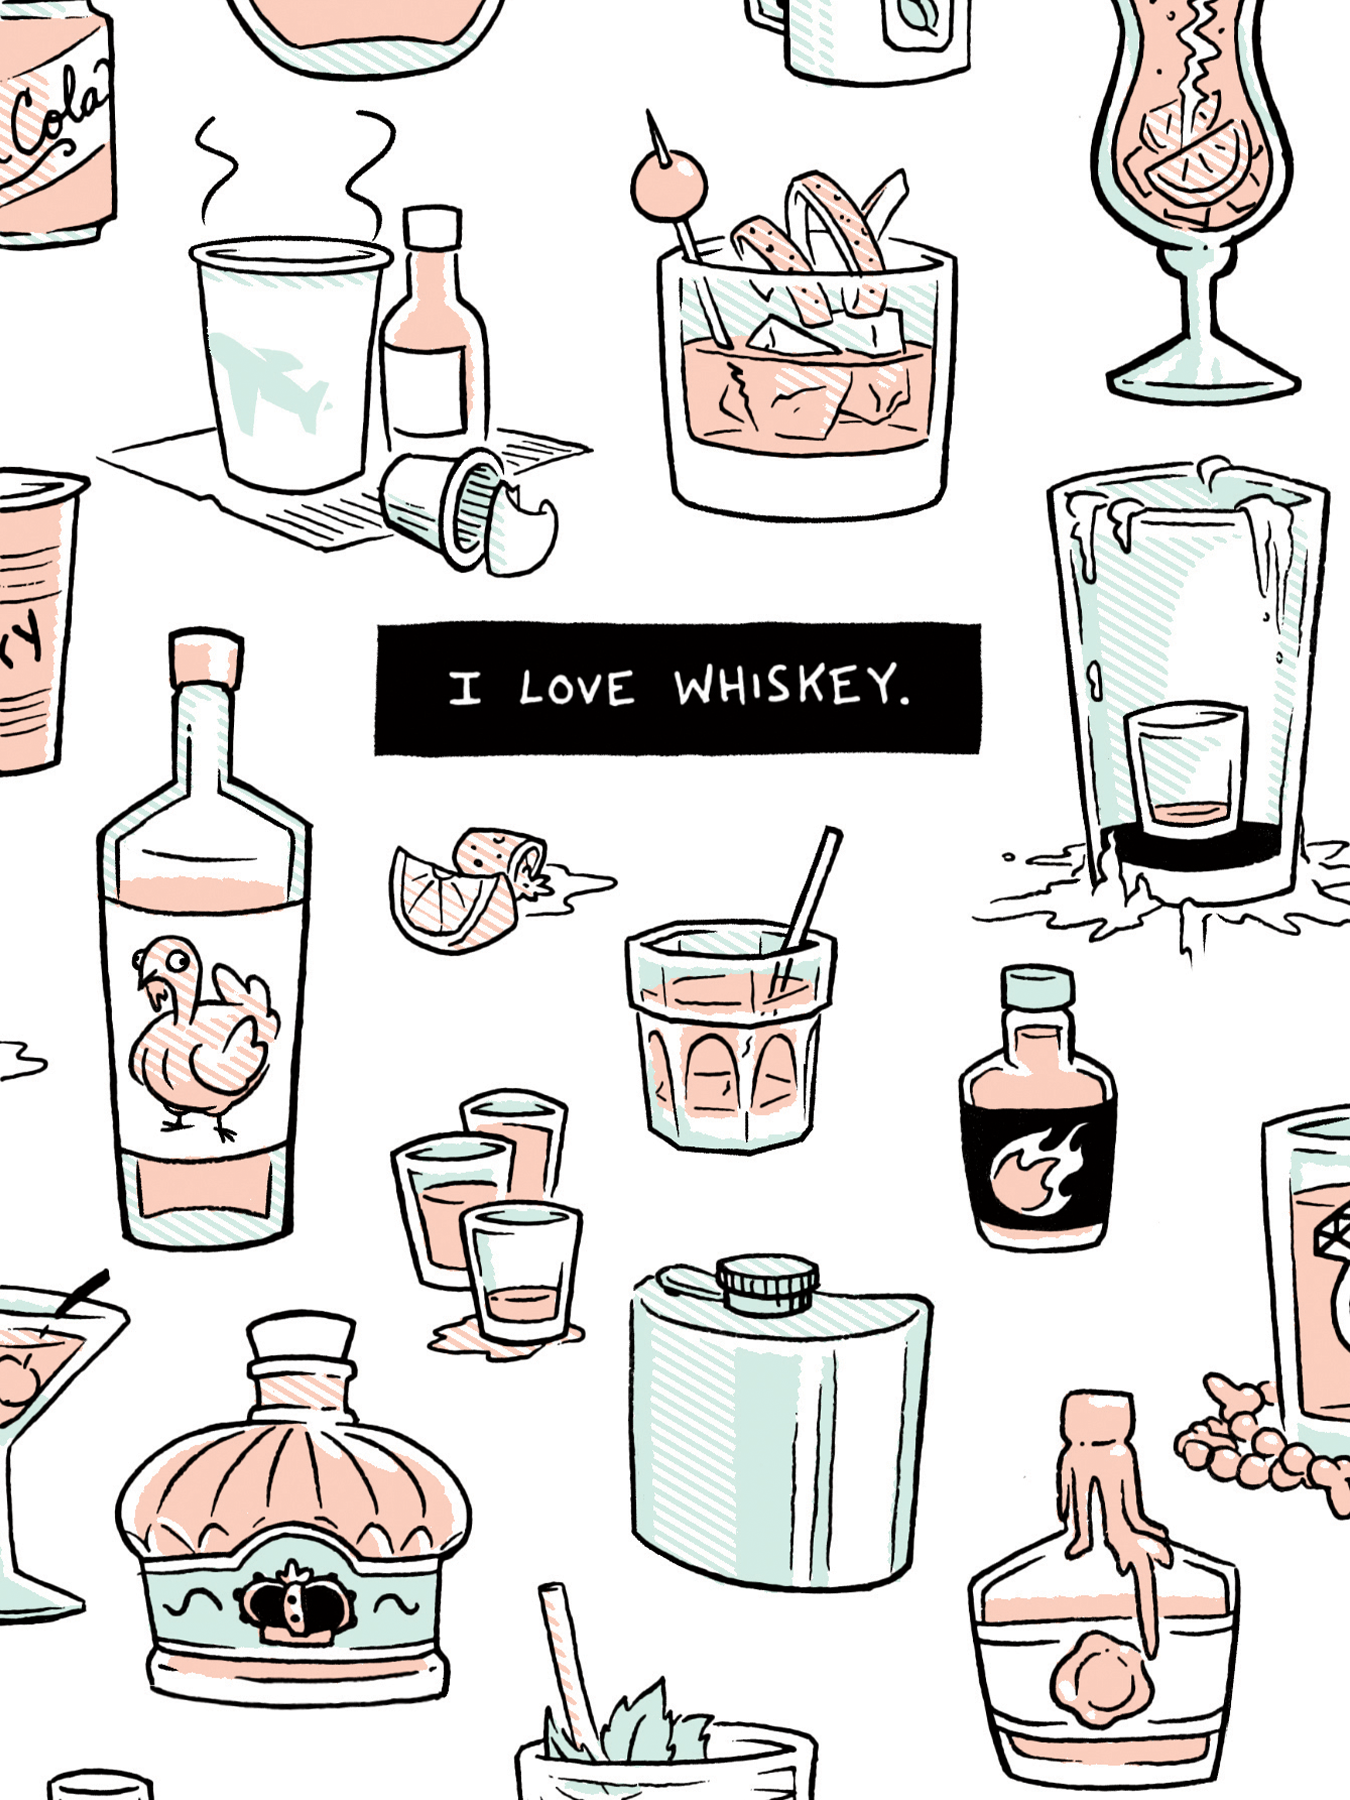 Whiskey-1.png